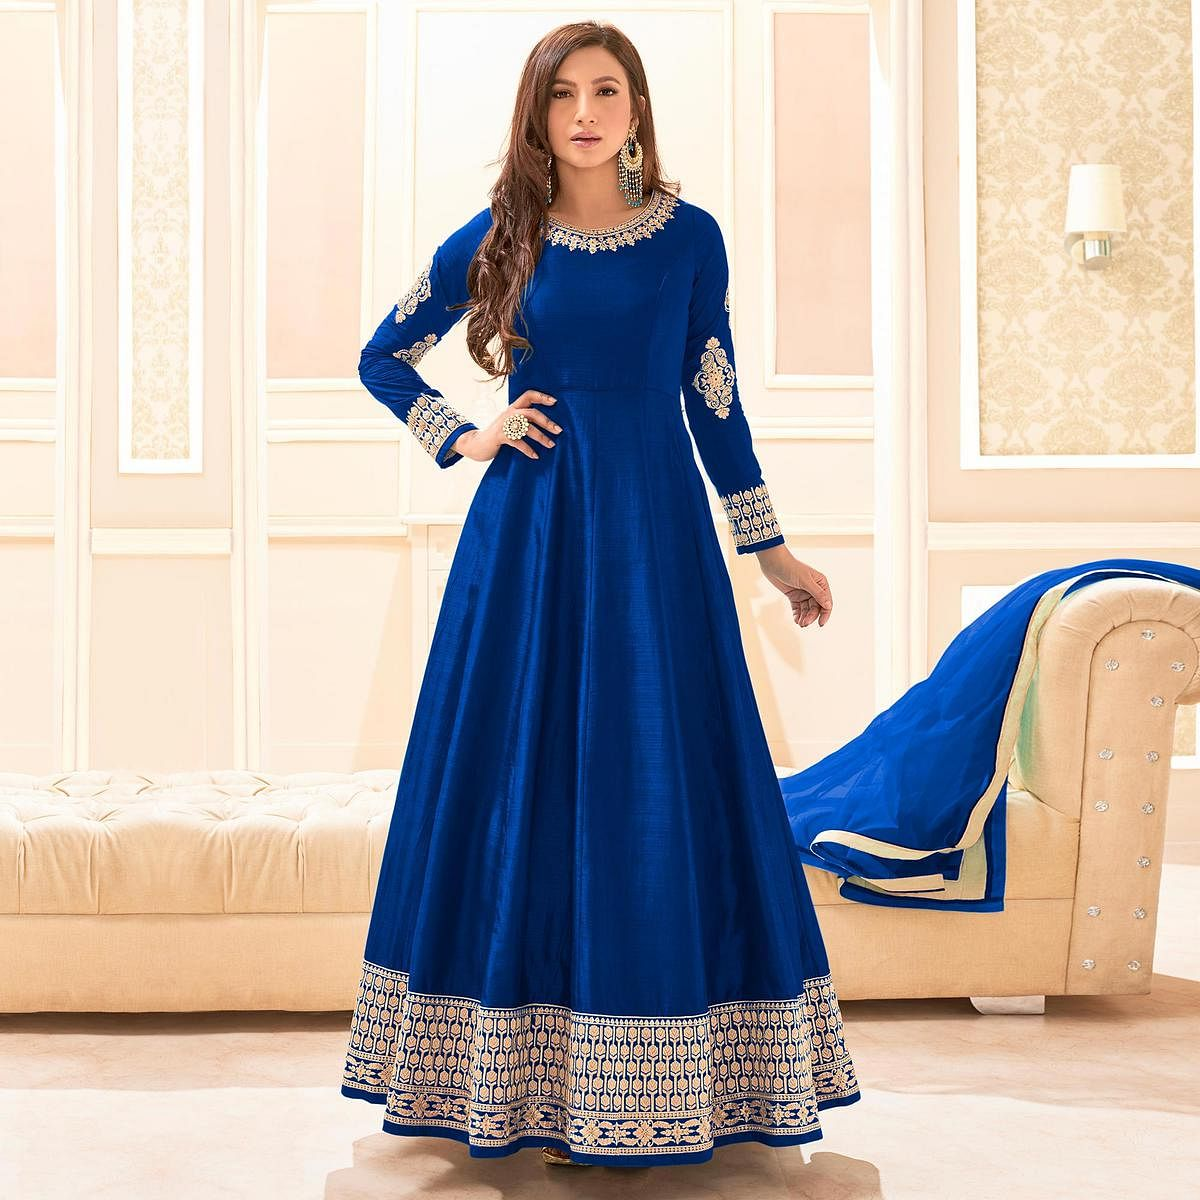 Starring Royal Blue Colored Party Wear Embroidered Cotton Anarkali Suit